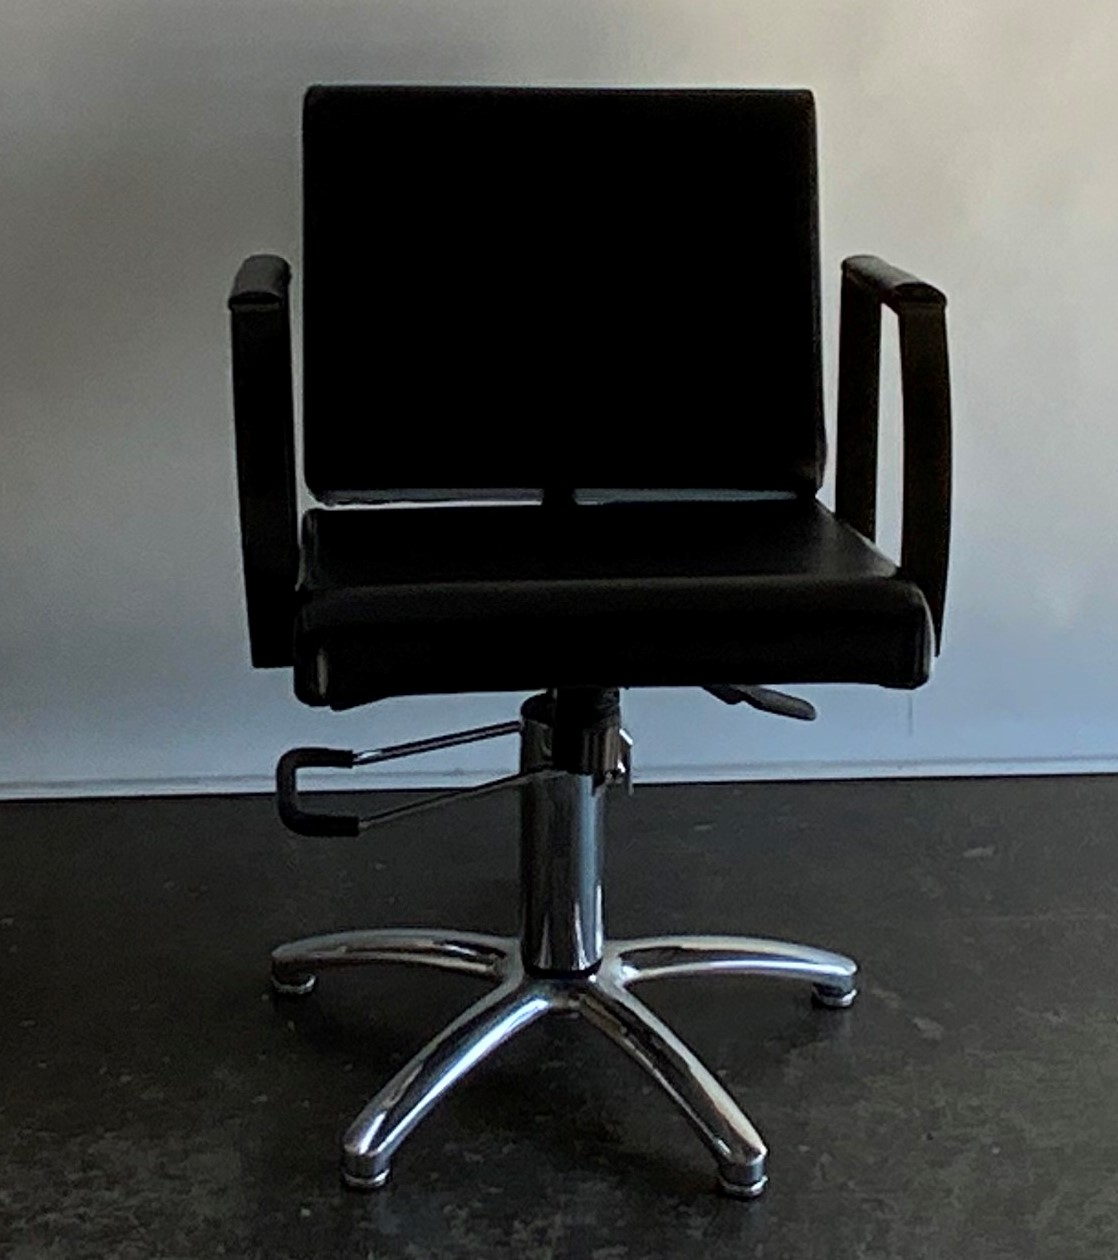 Australian Made 2 in 1 Hydraulic Salon Chair/Shampoo Chair